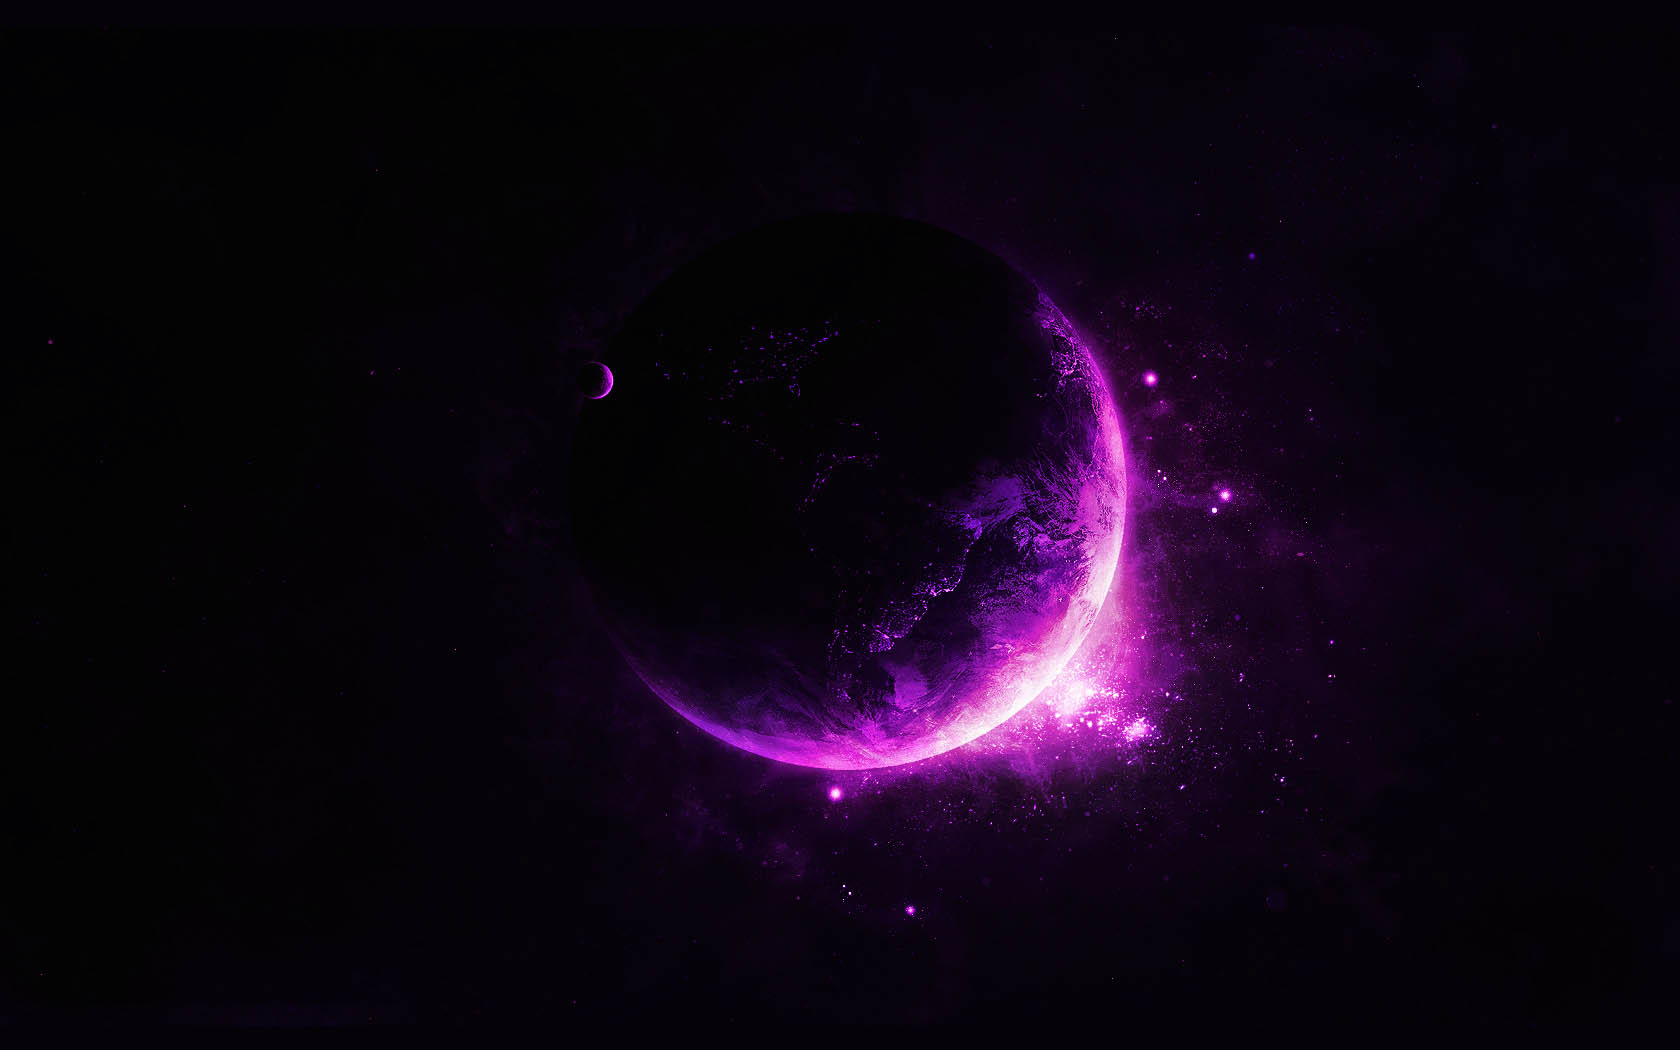 Purple Moon Wallpaper 3284 Hd Wallpapers in Space   Imagescicom 1680x1050